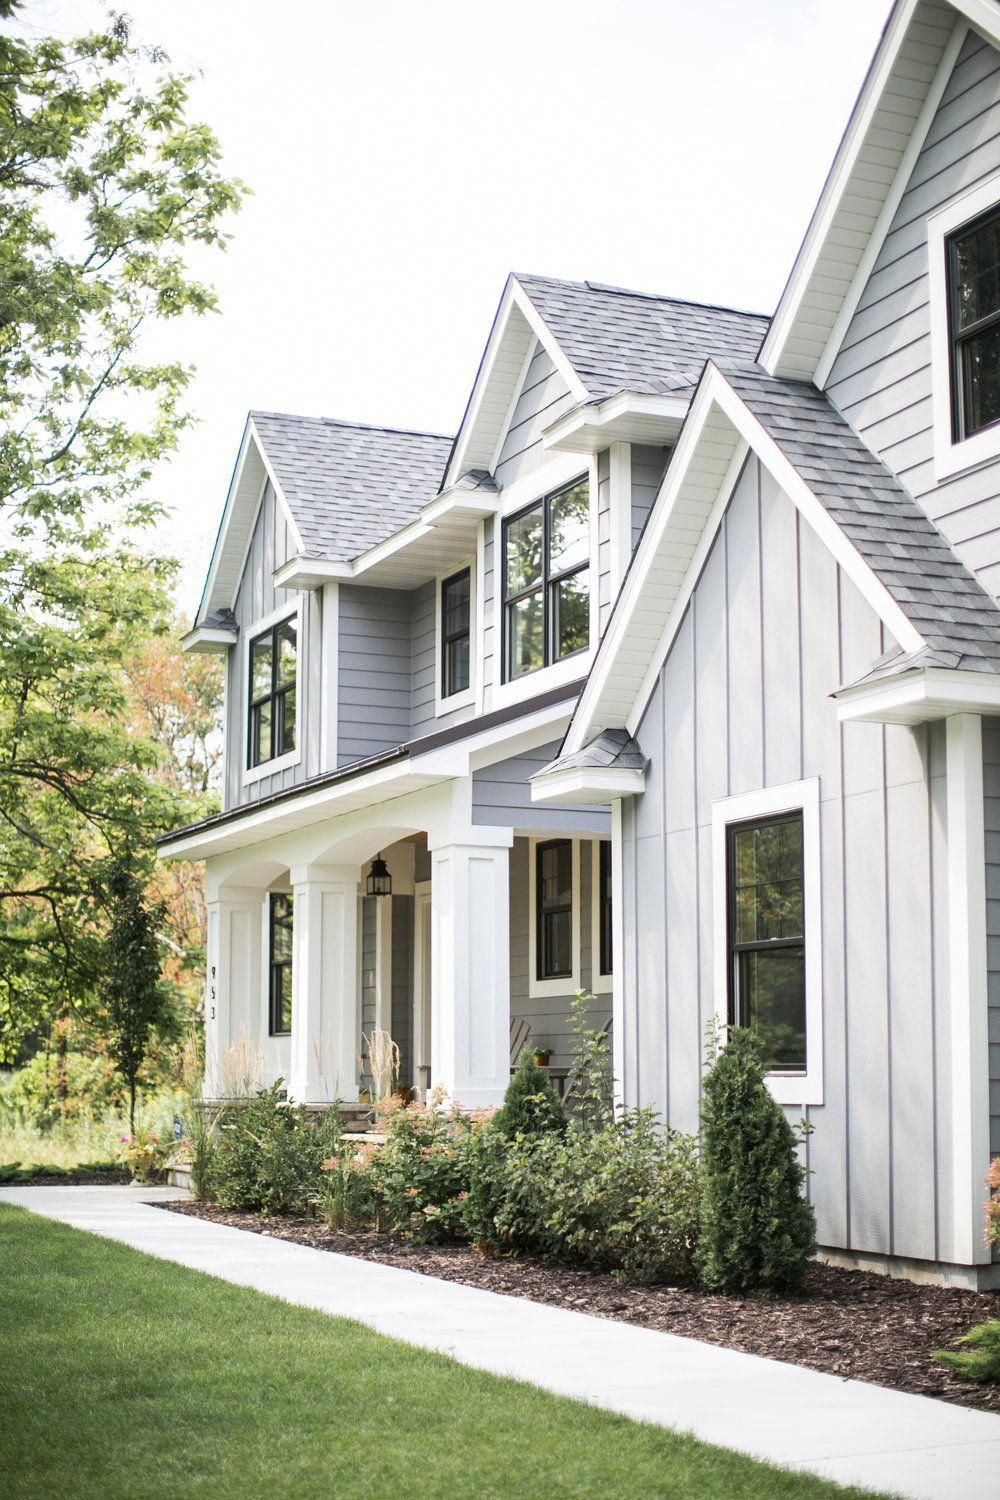 Green Roofs And Great Savings Exterior House Siding Modern Farmhouse Exterior Gray House Exterior